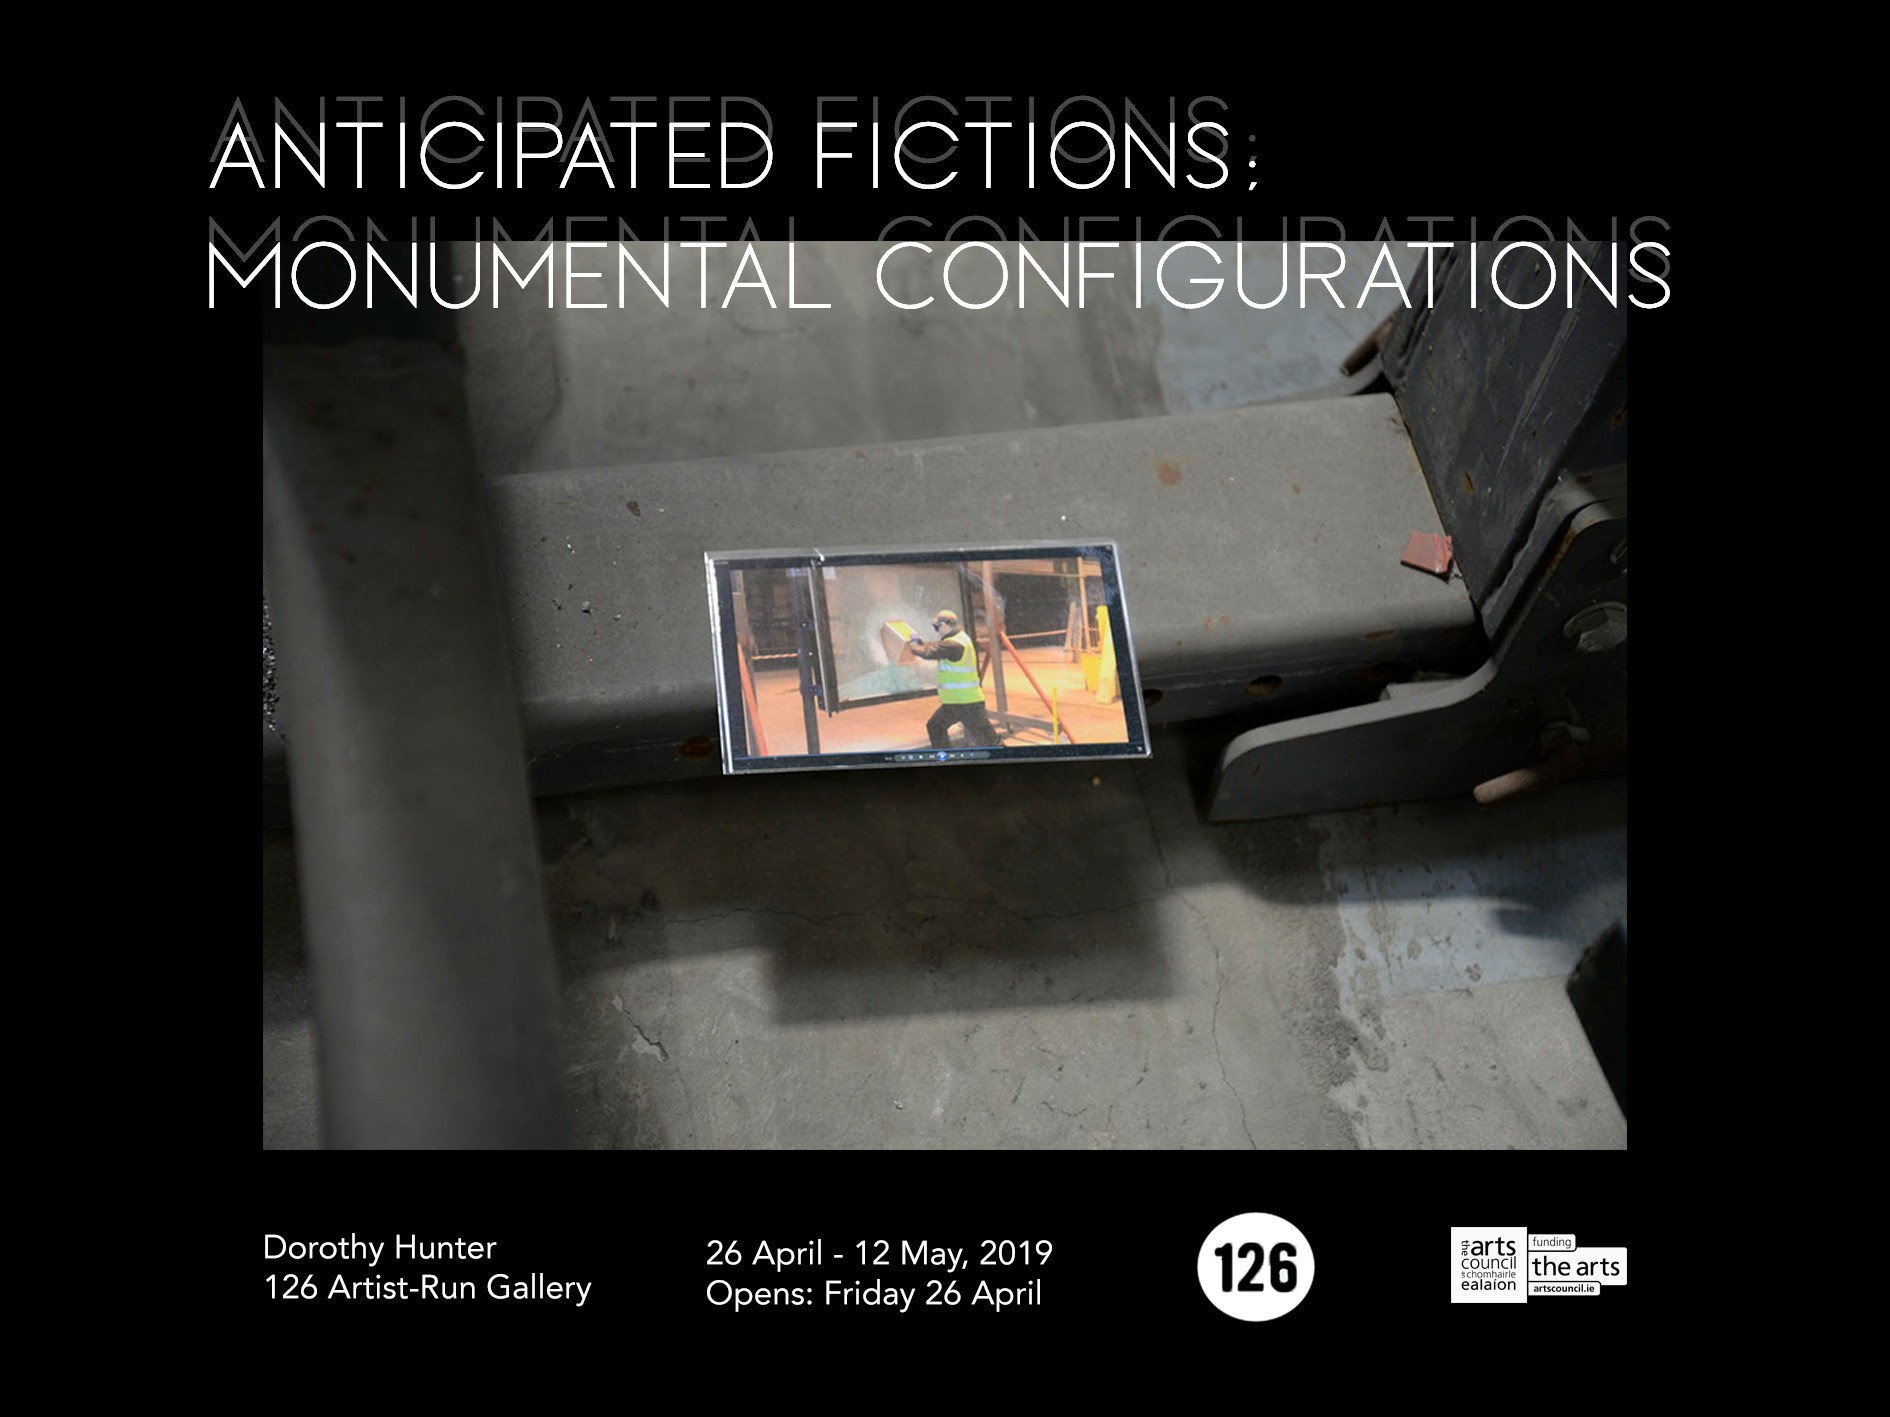 Anticipated Fictions: Monumental Configurations by Dorothy Hunter